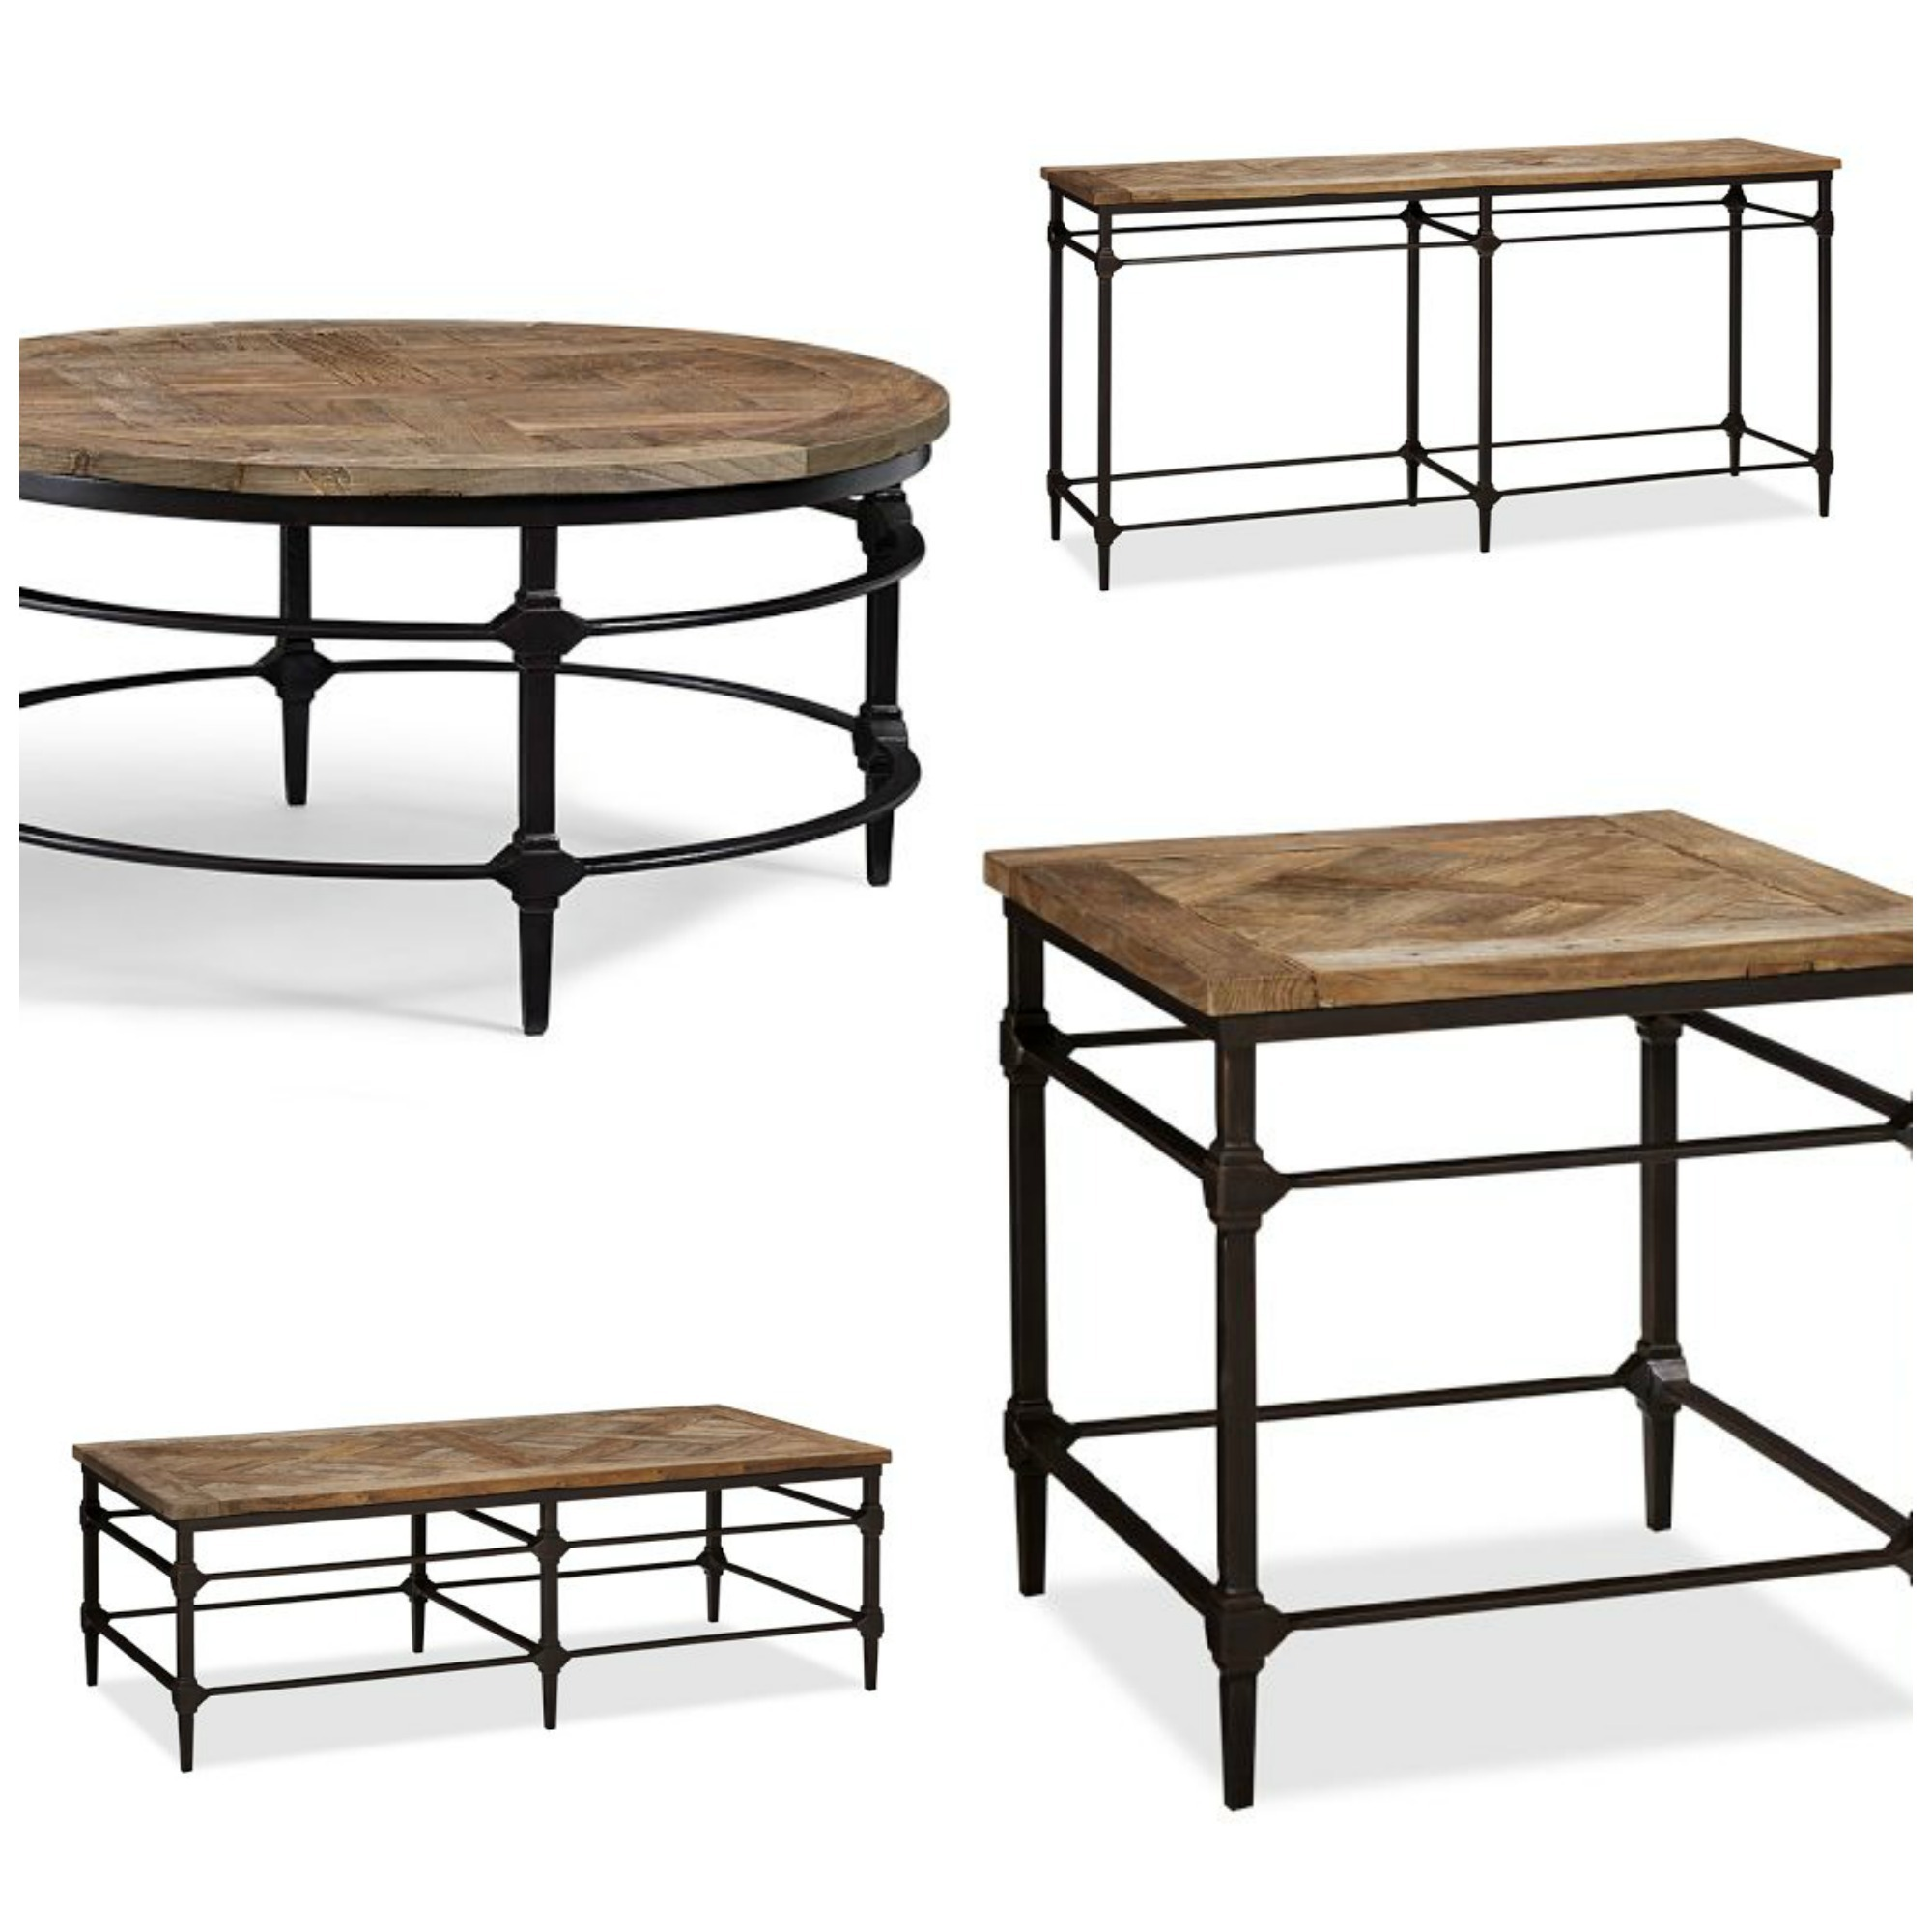 parquet reclaimed wood console table pottery barn category archive for accent tables decor look alikes collection knock off furniture brass coffee small kitchen and end wicker